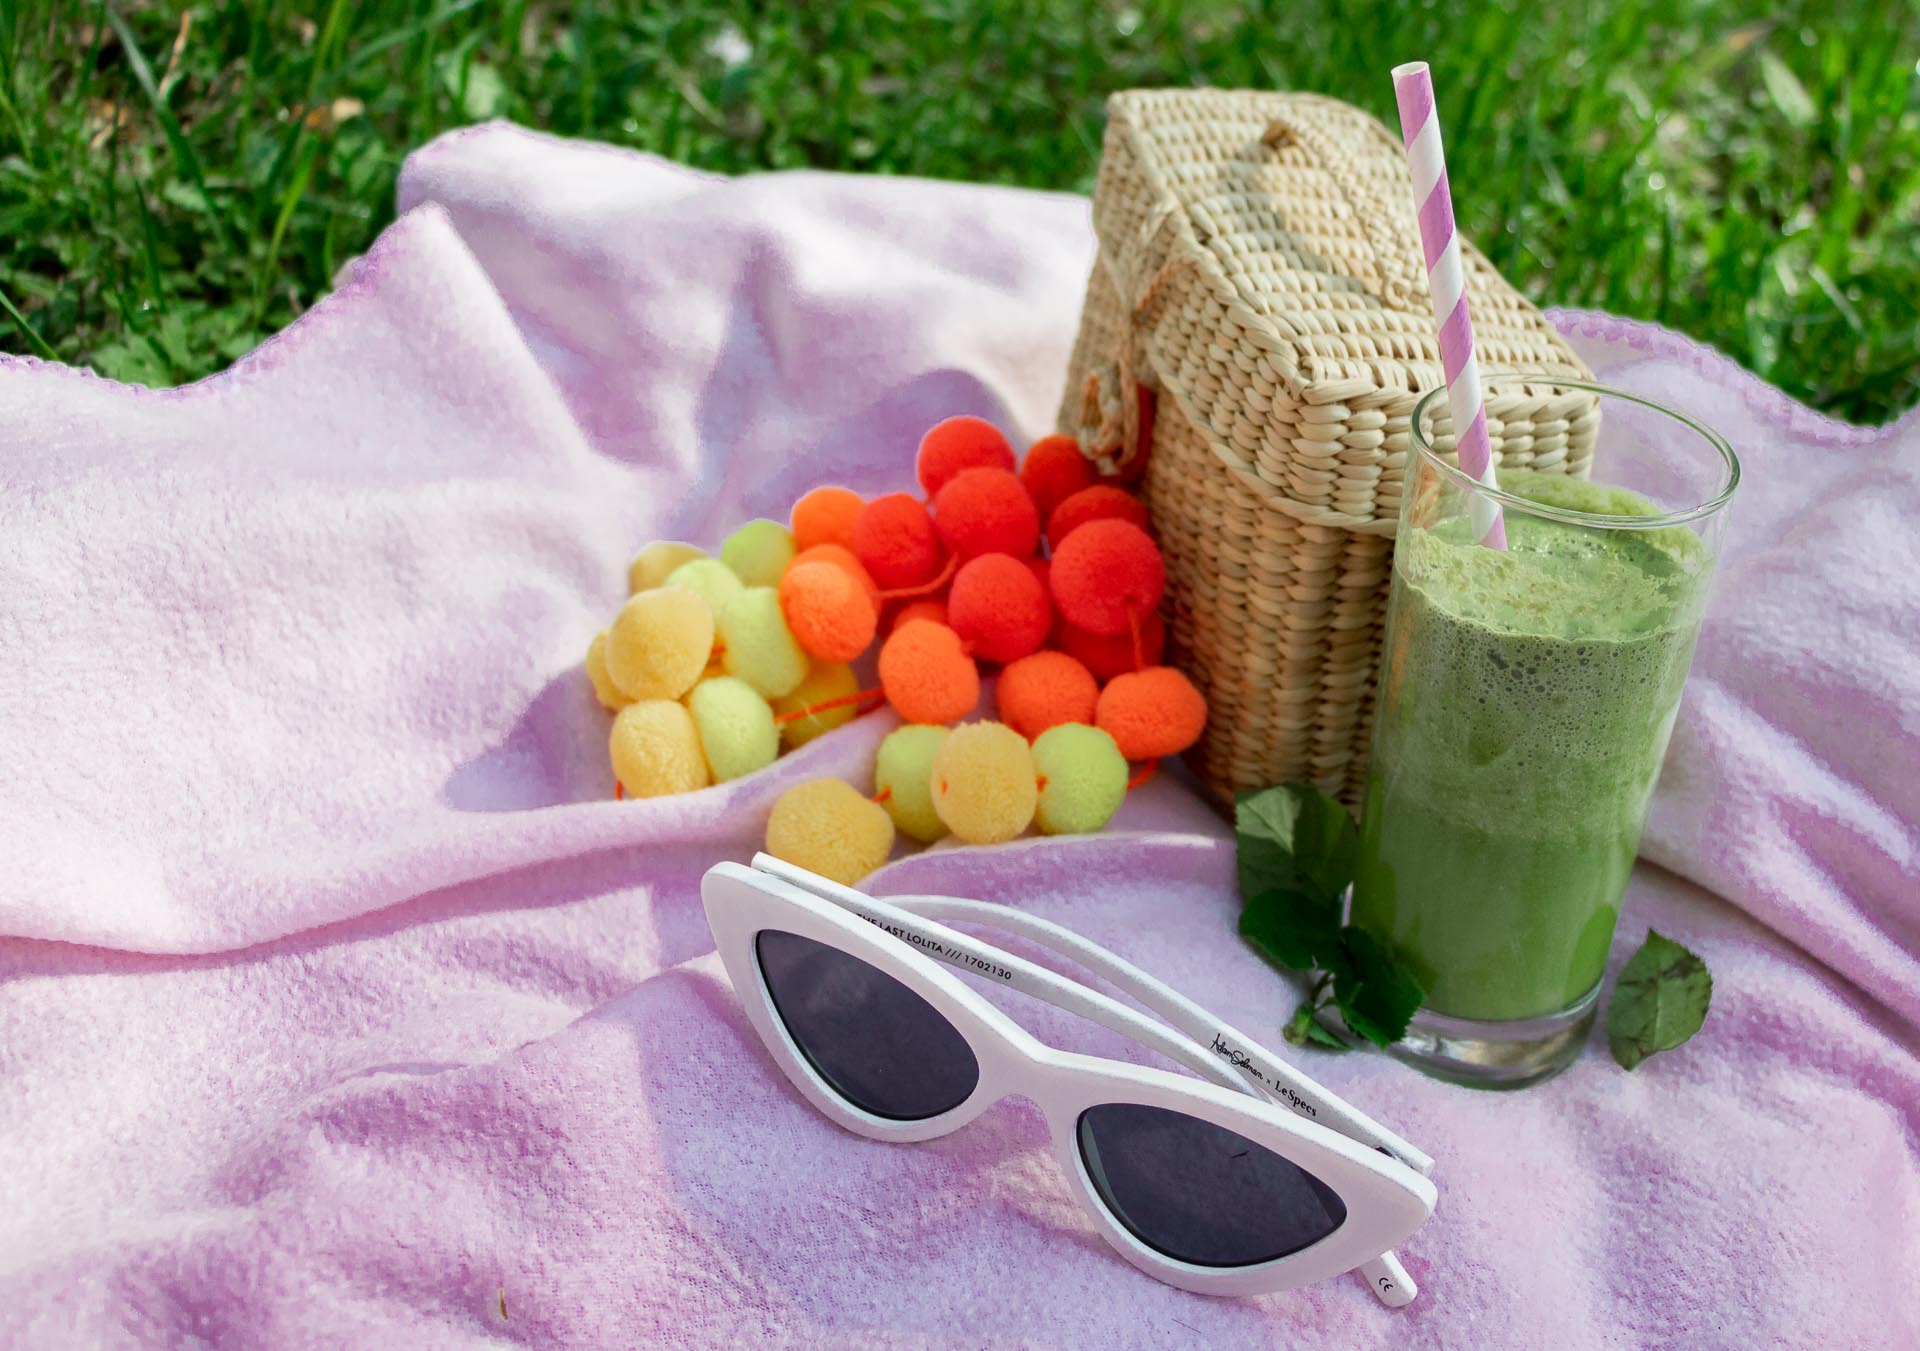 Spring picnic Nannacay basket bag Le Specs sunglasses